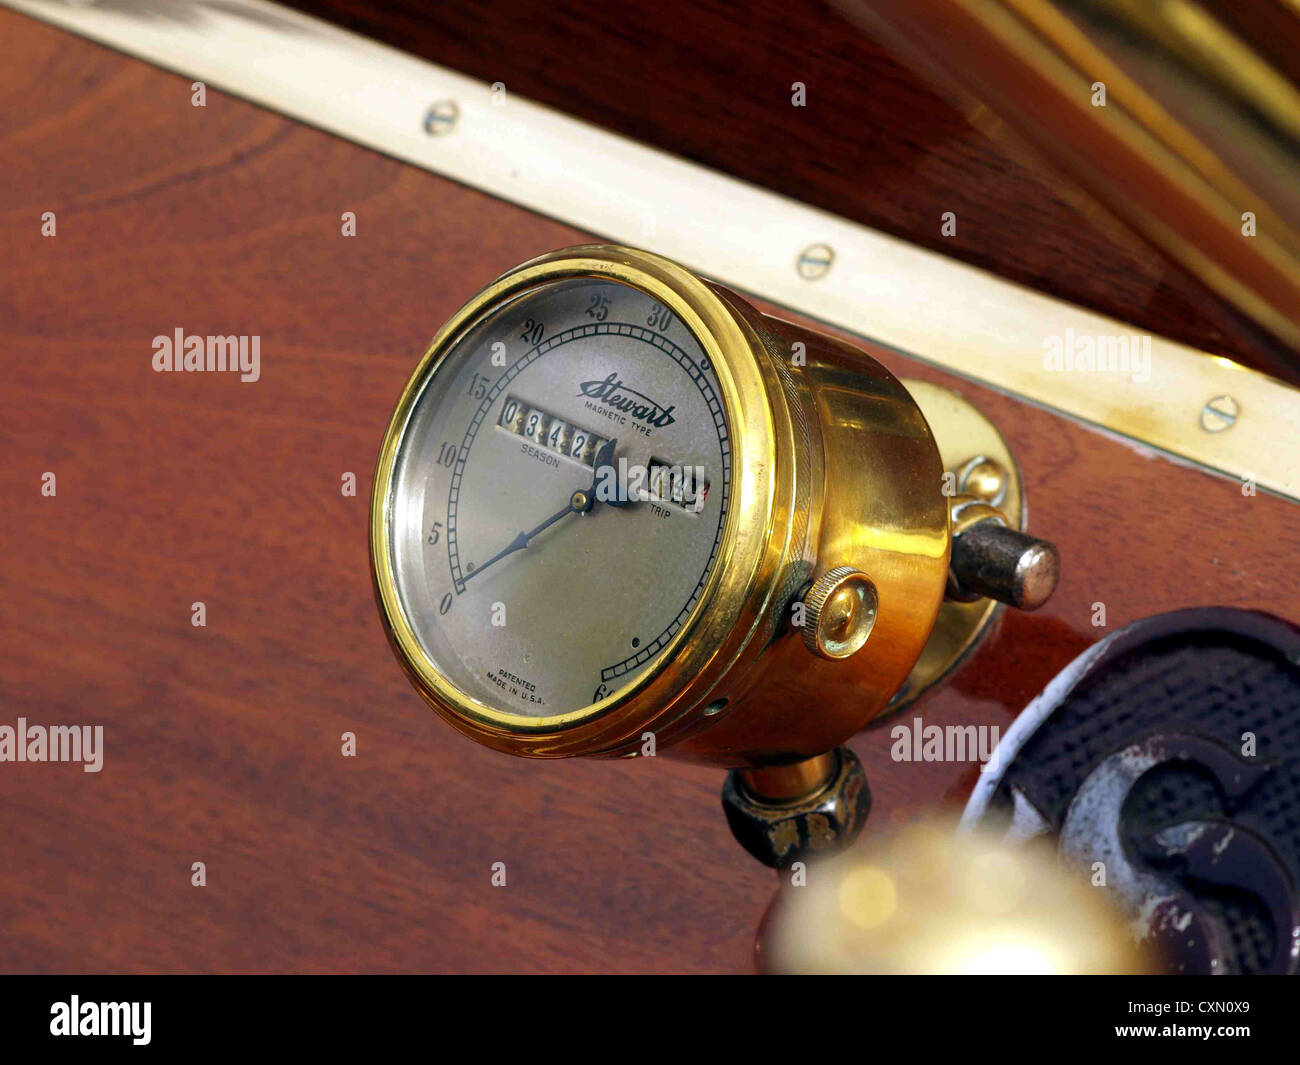 1910 Straker-Squire, Steard magnetic type spedometer. - Stock Image